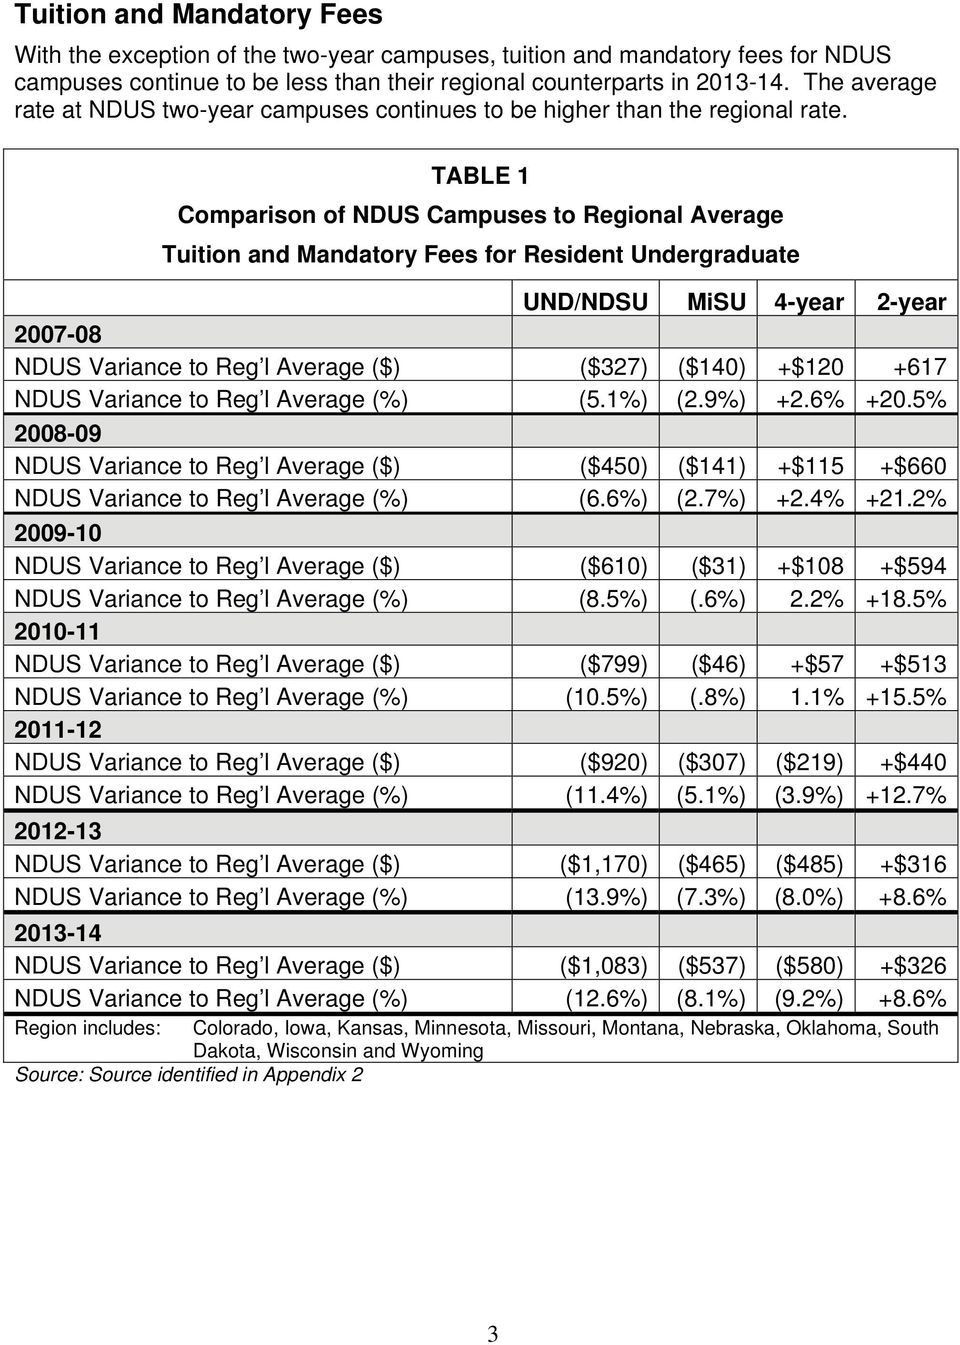 TABLE 1 Comparison of NDUS Campuses to Regional Average Tuition and Mandatory Fees for Resident Undergraduate UND/NDSU MiSU 4-year 2-year 2007-08 ($) ($327) ($140) +$120 +617 (%) (5.1%) (2.9%) +2.